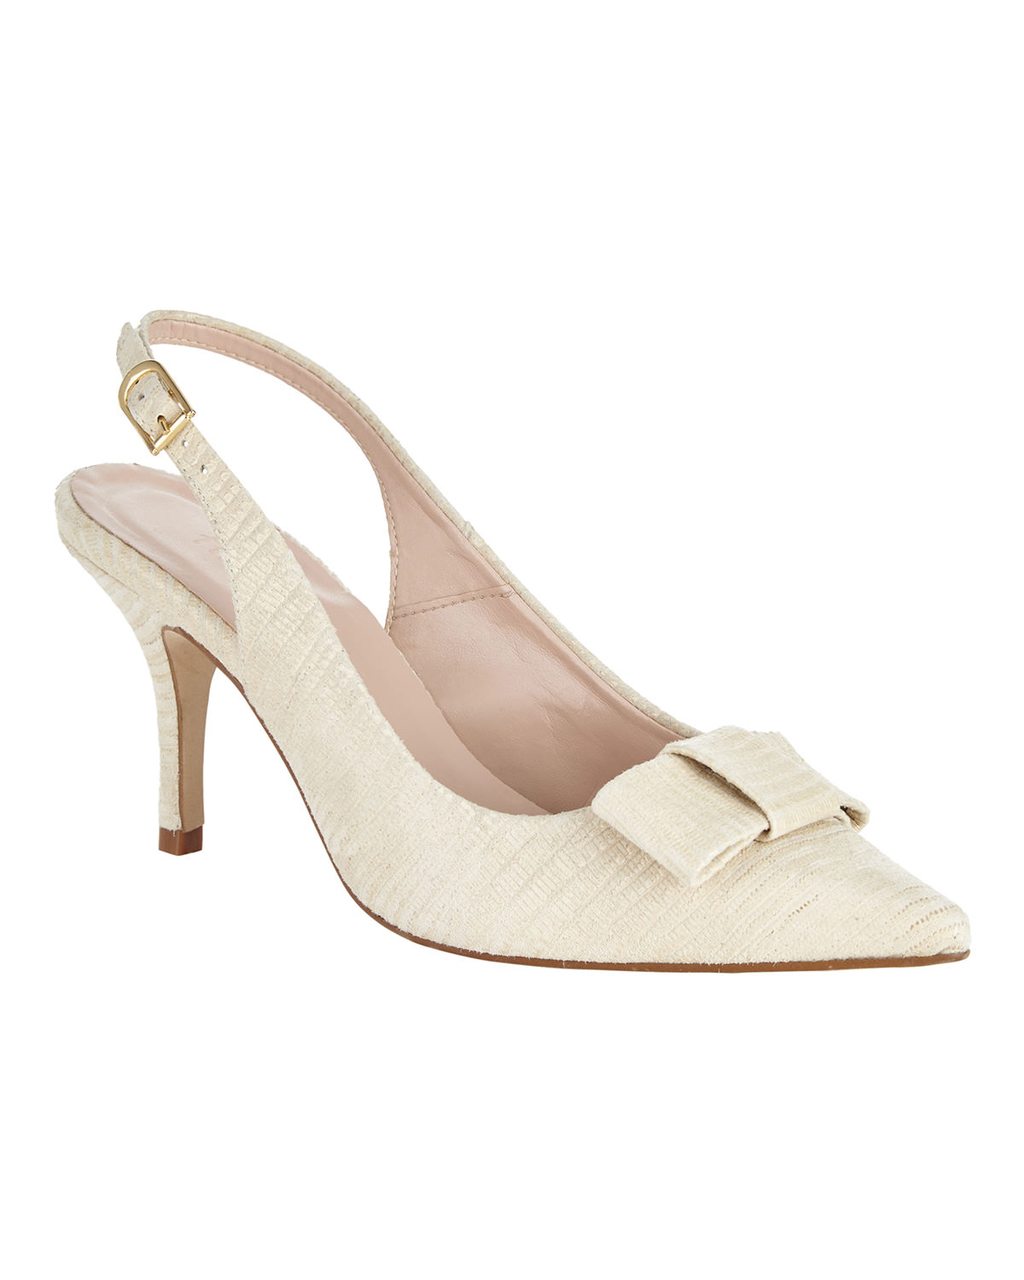 Sammy Leather Bow Sling Back - predominant colour: ivory/cream; occasions: occasion; material: leather; heel height: mid; heel: kitten; toe: pointed toe; style: slingbacks; finish: plain; pattern: plain; embellishment: bow; season: s/s 2016